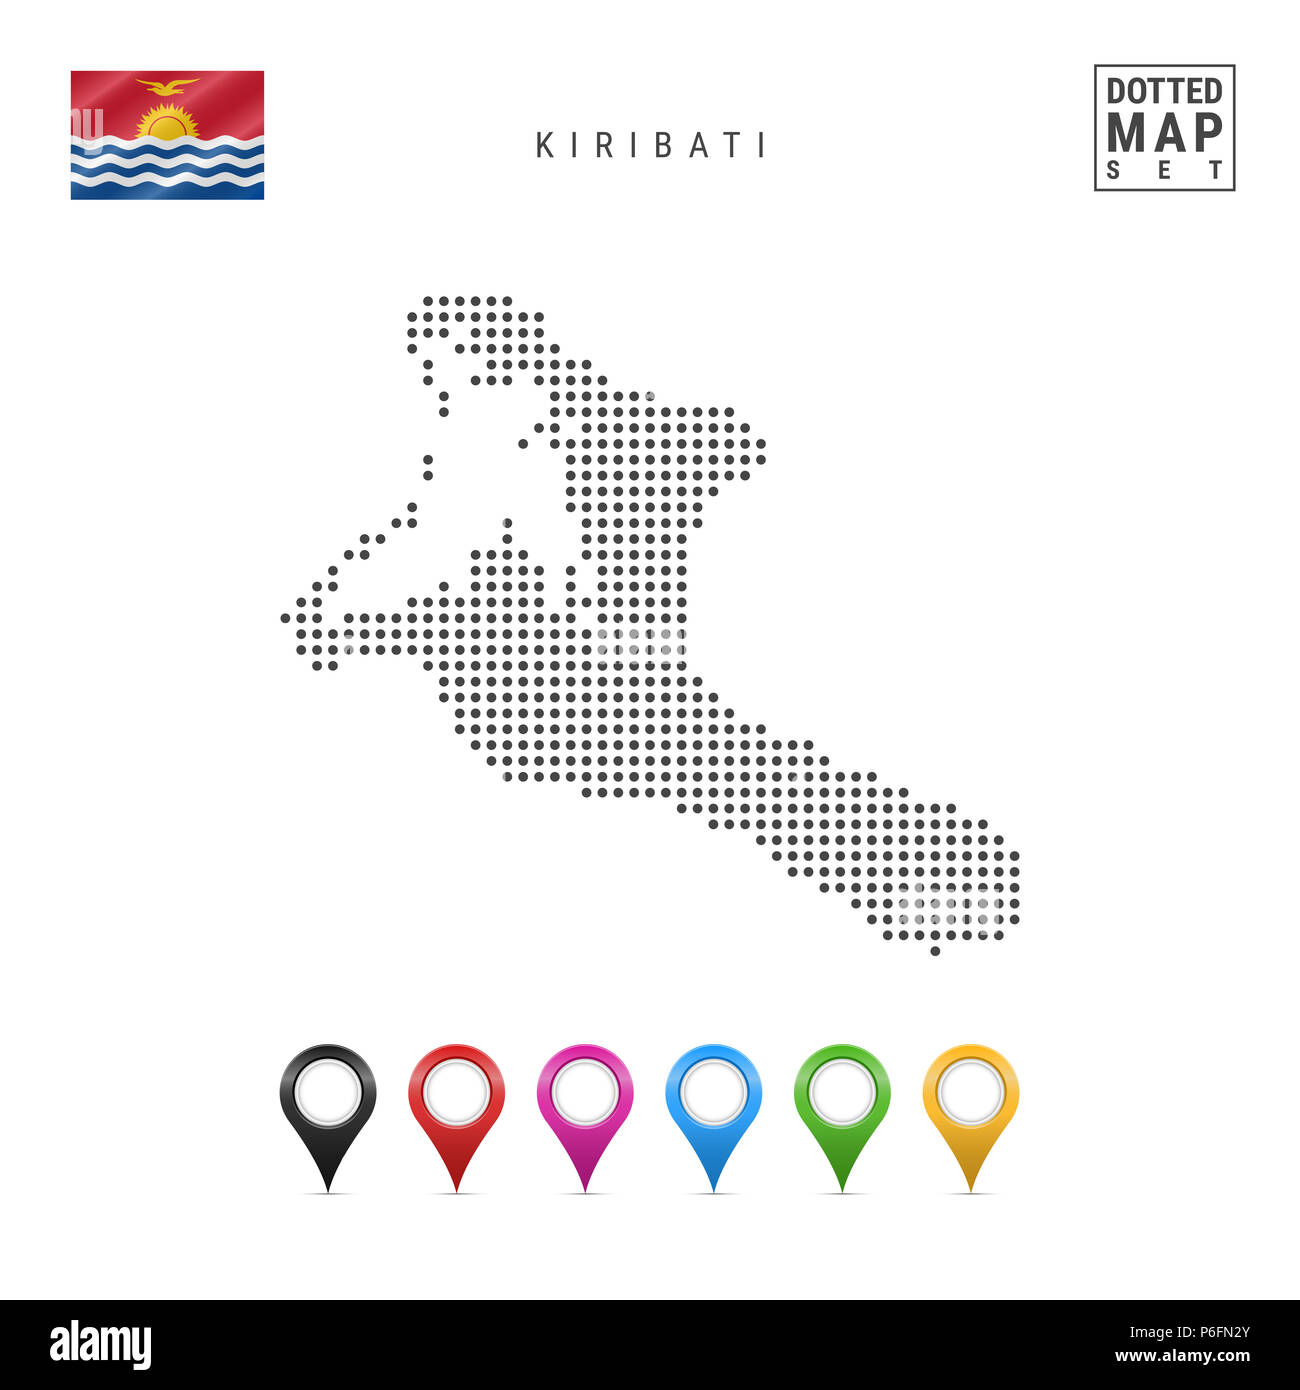 Dotted Map of Kiribati. Simple Silhouette of Kiribati. The National Flag of Kiribati. Set of Multicolored Map Markers. Illustration Isolated on White  - Stock Image